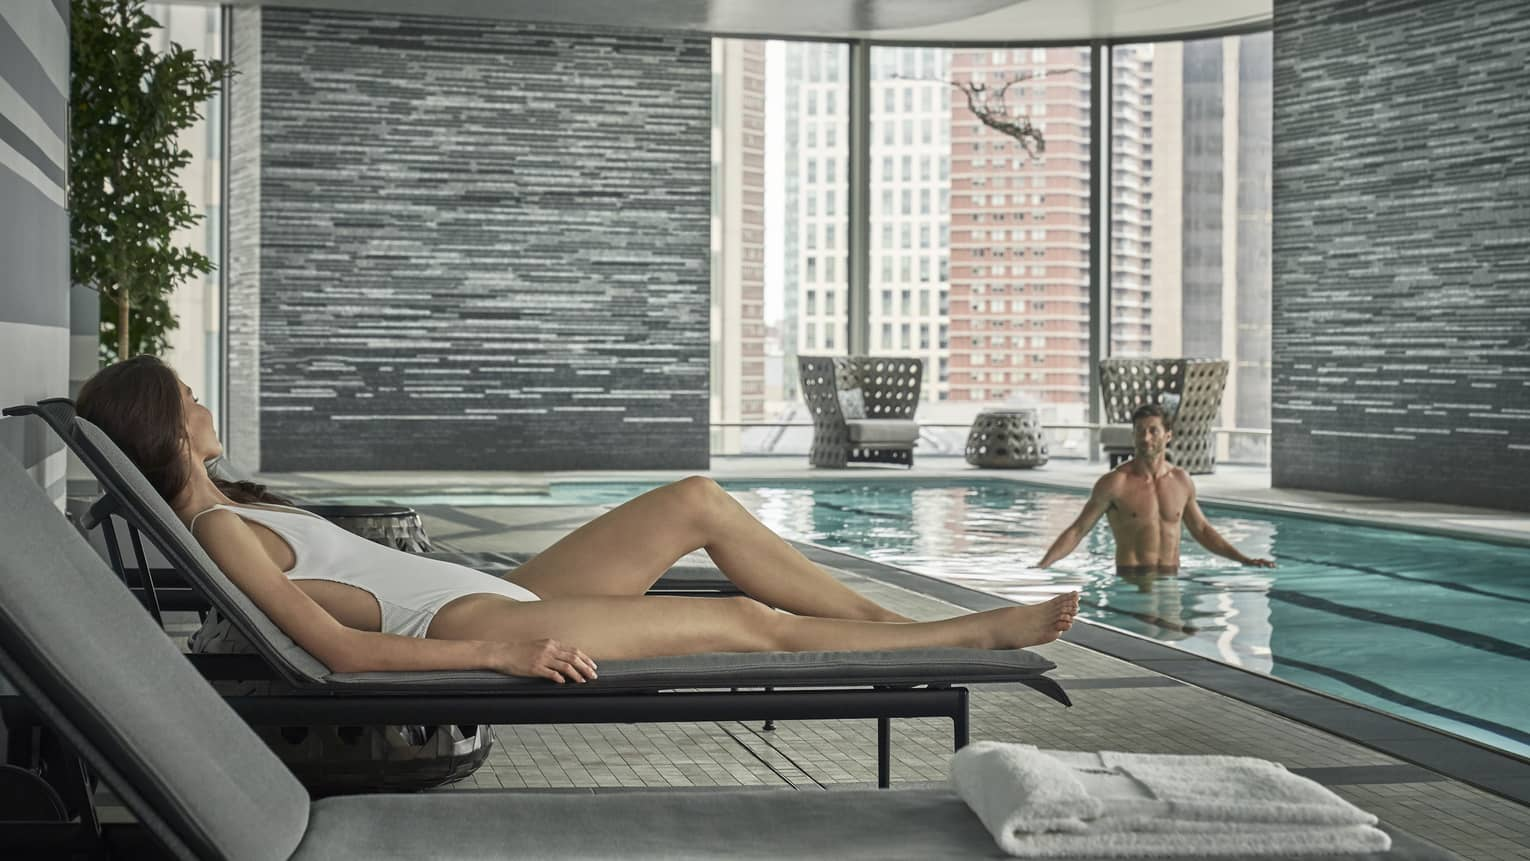 A woman in a white bathing suit and lounger looks on at her significant other at the lap pool in the Spa.